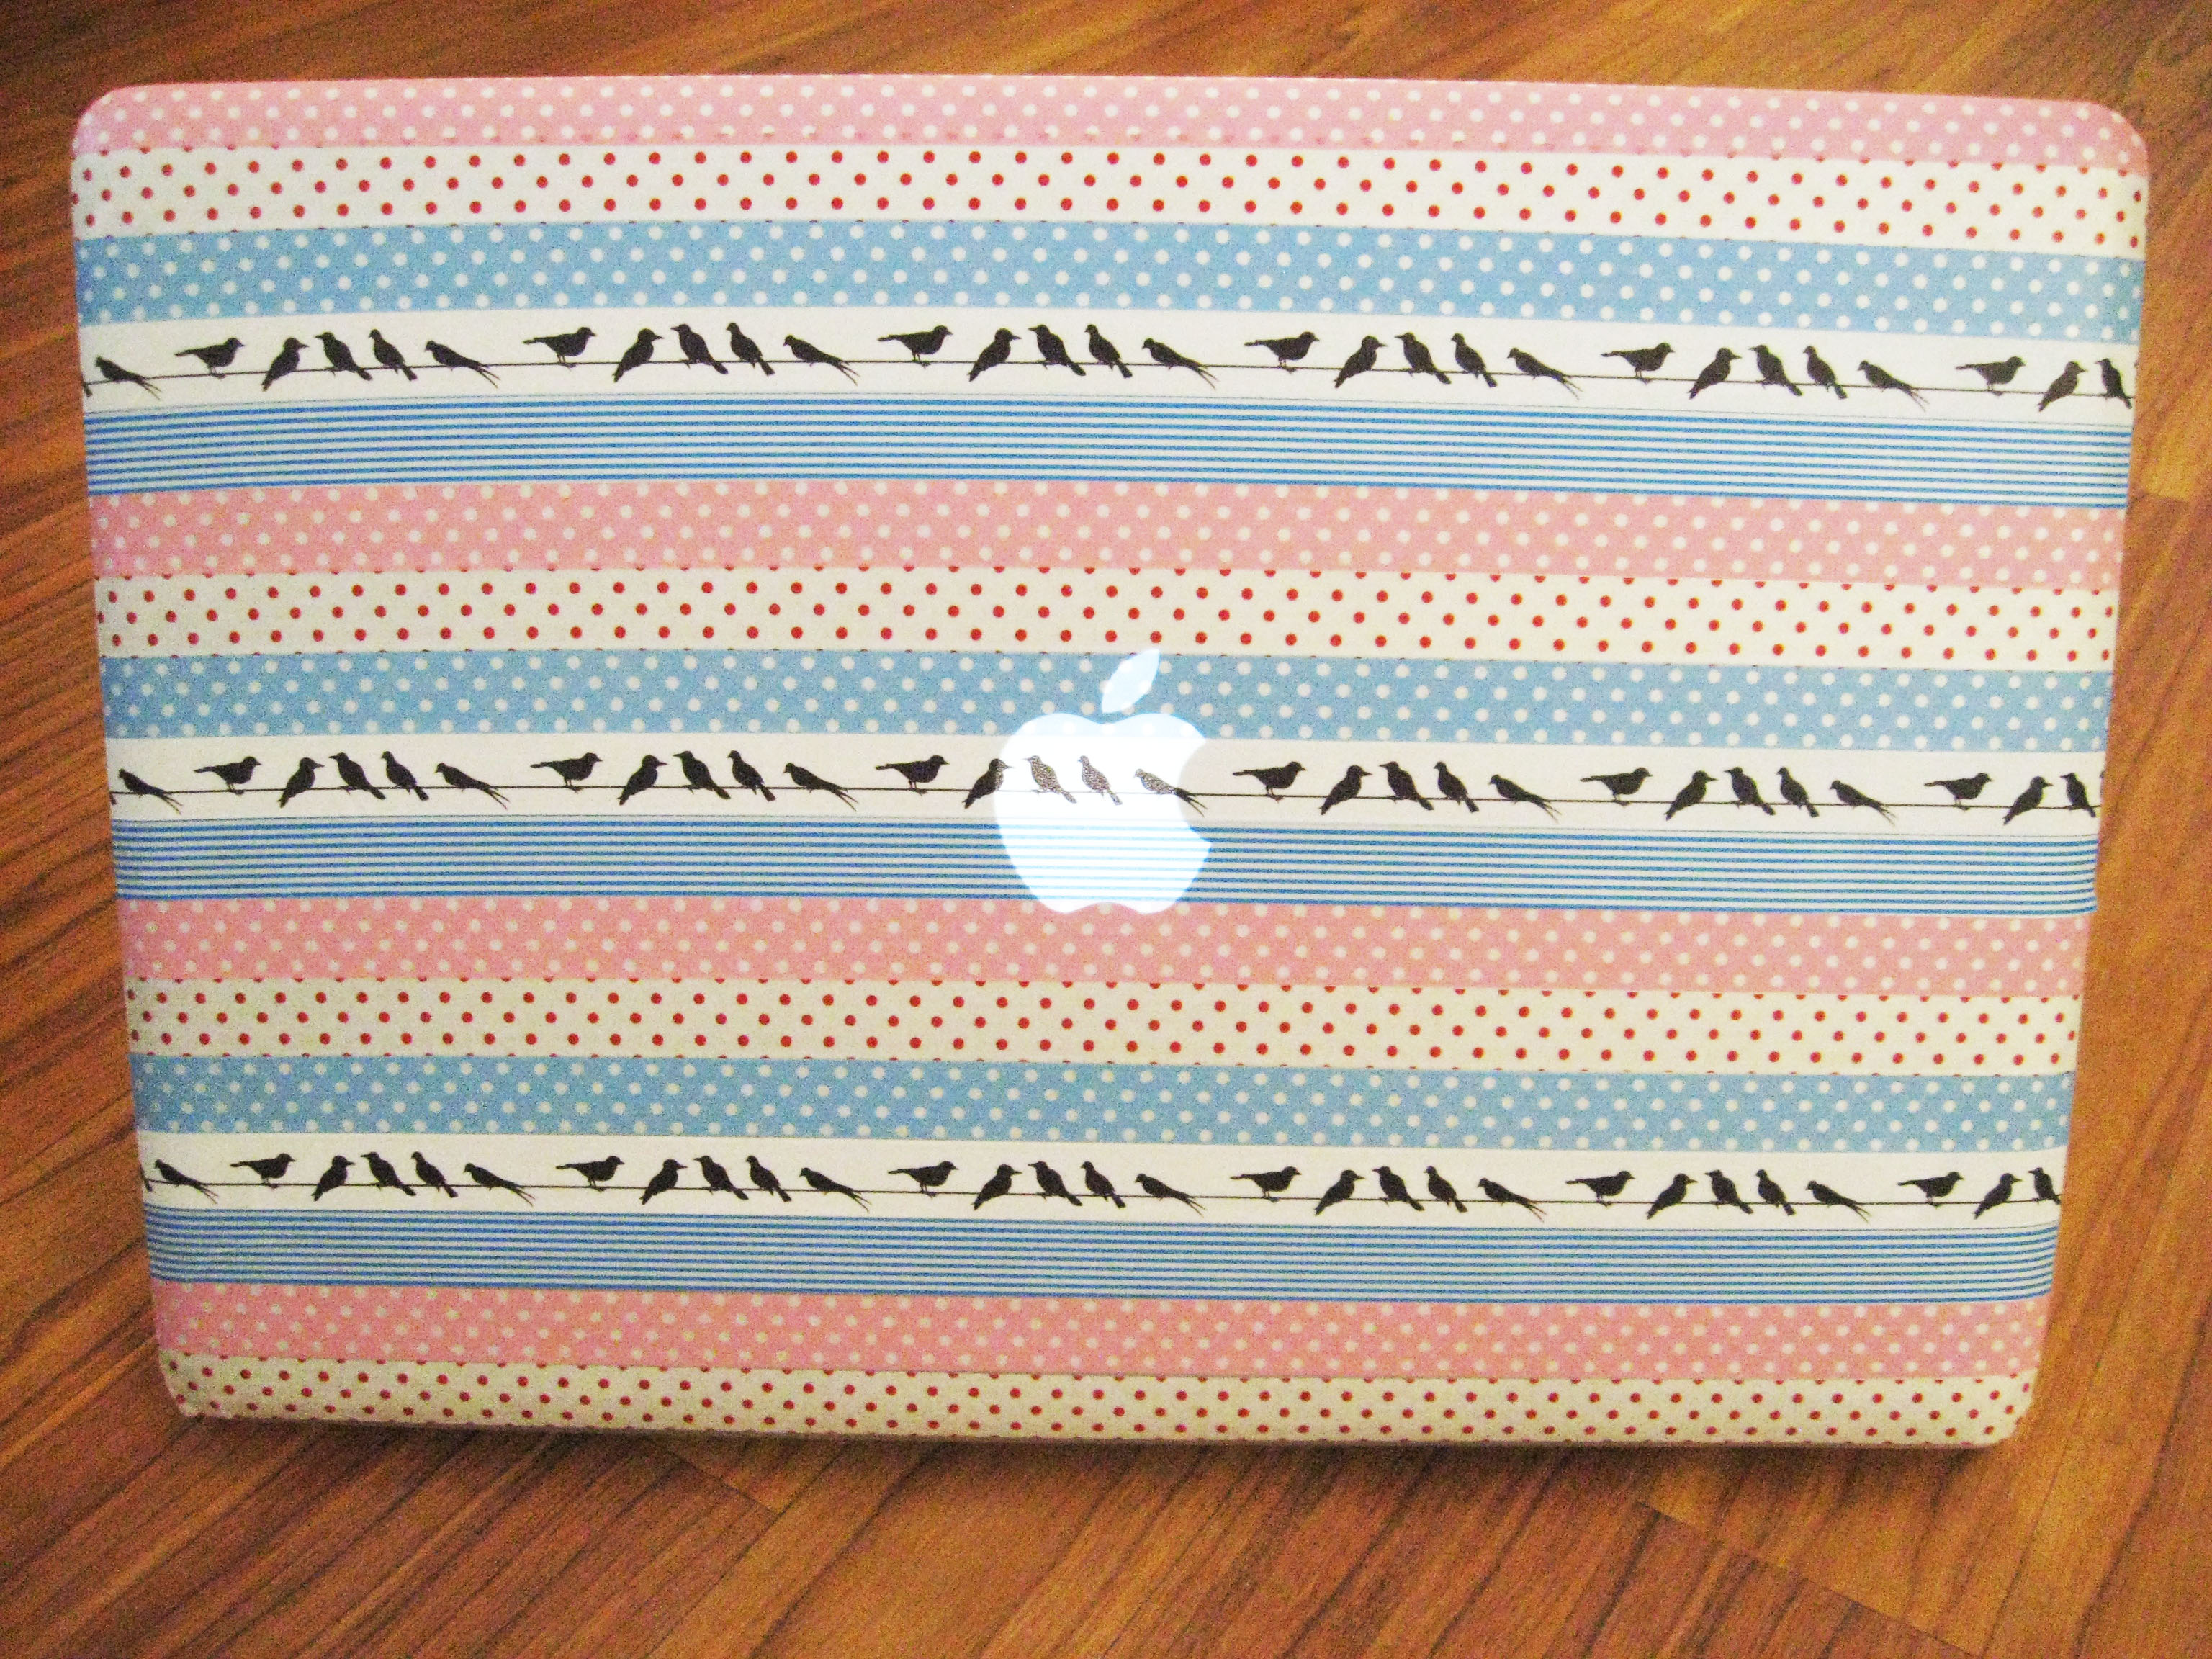 Diy washi tape laptop skin make something mondays for What can you do with washi tape